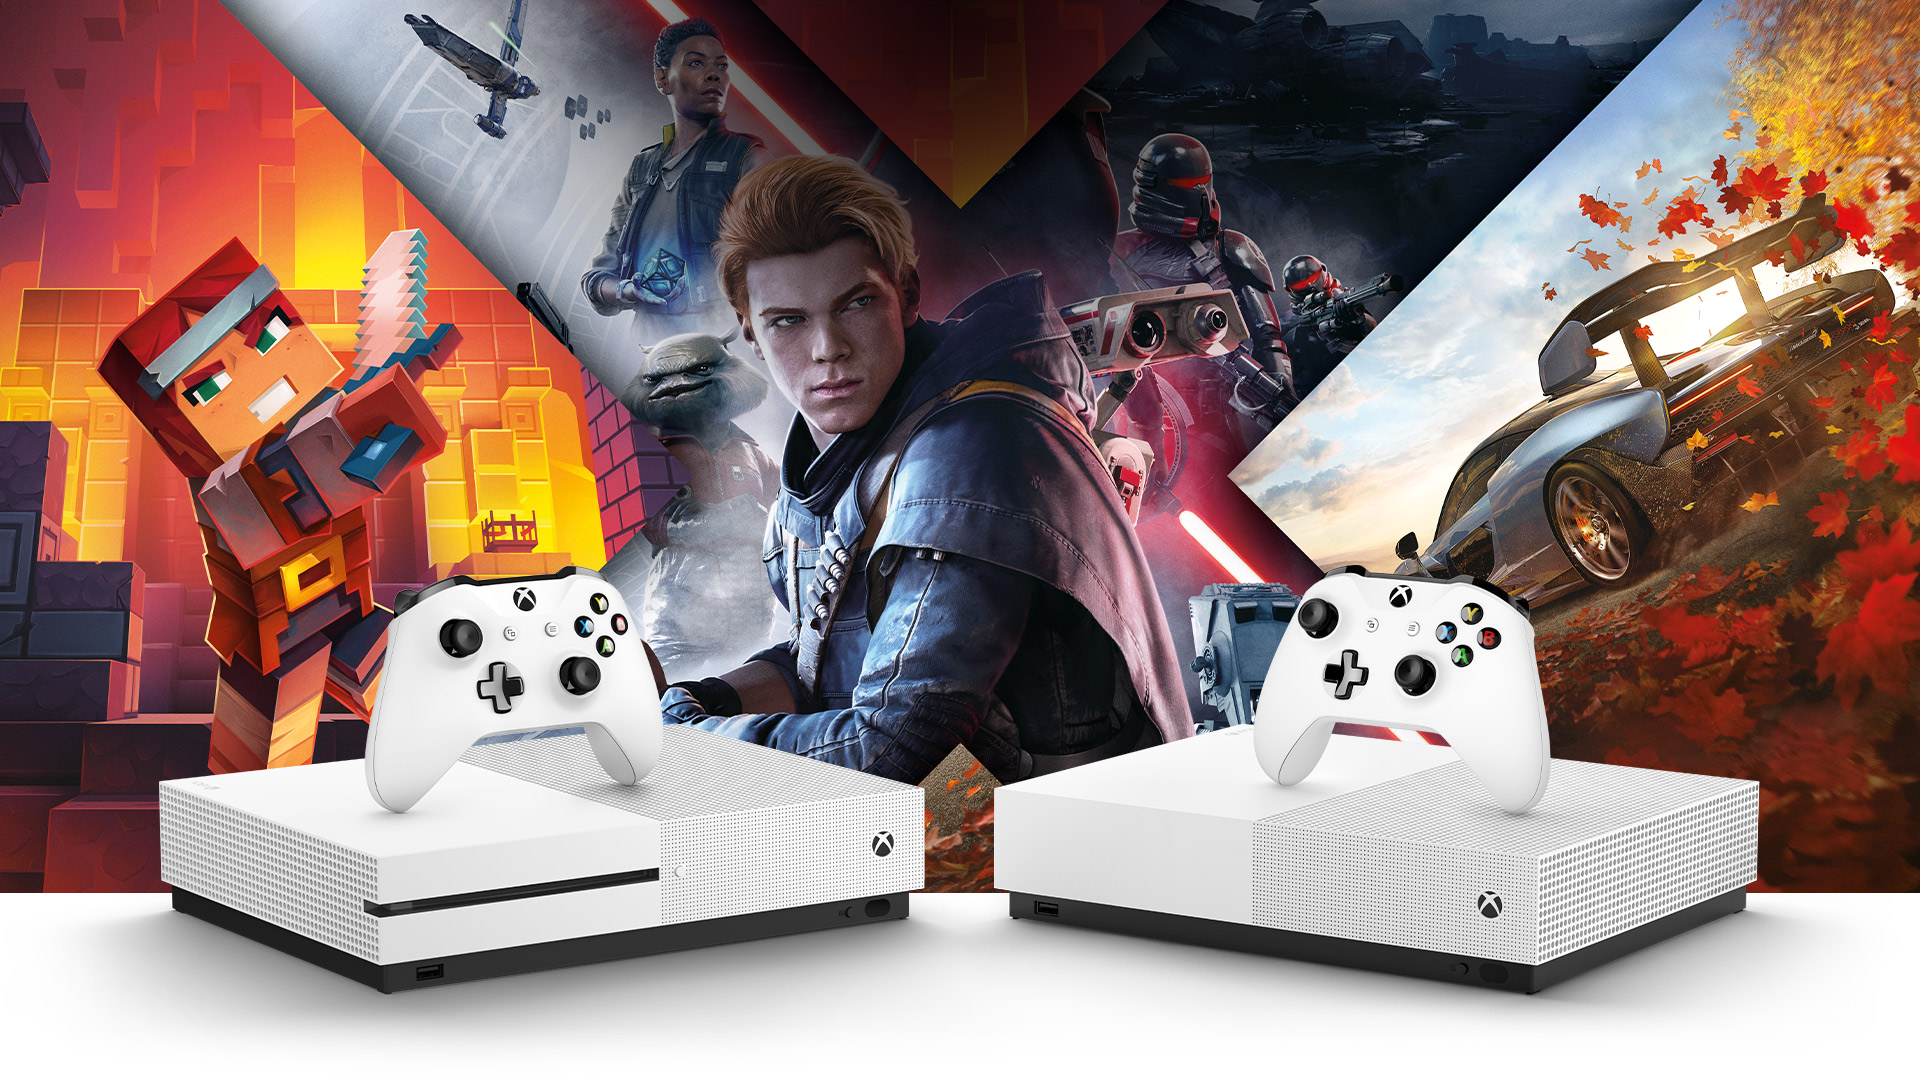 Xbox One S 和 Xbox One S All Digital Edition 由 Minecraft、Forza Horizon 4、Star Wars Jedi Fallen Order 圖案所圍繞的正面圖